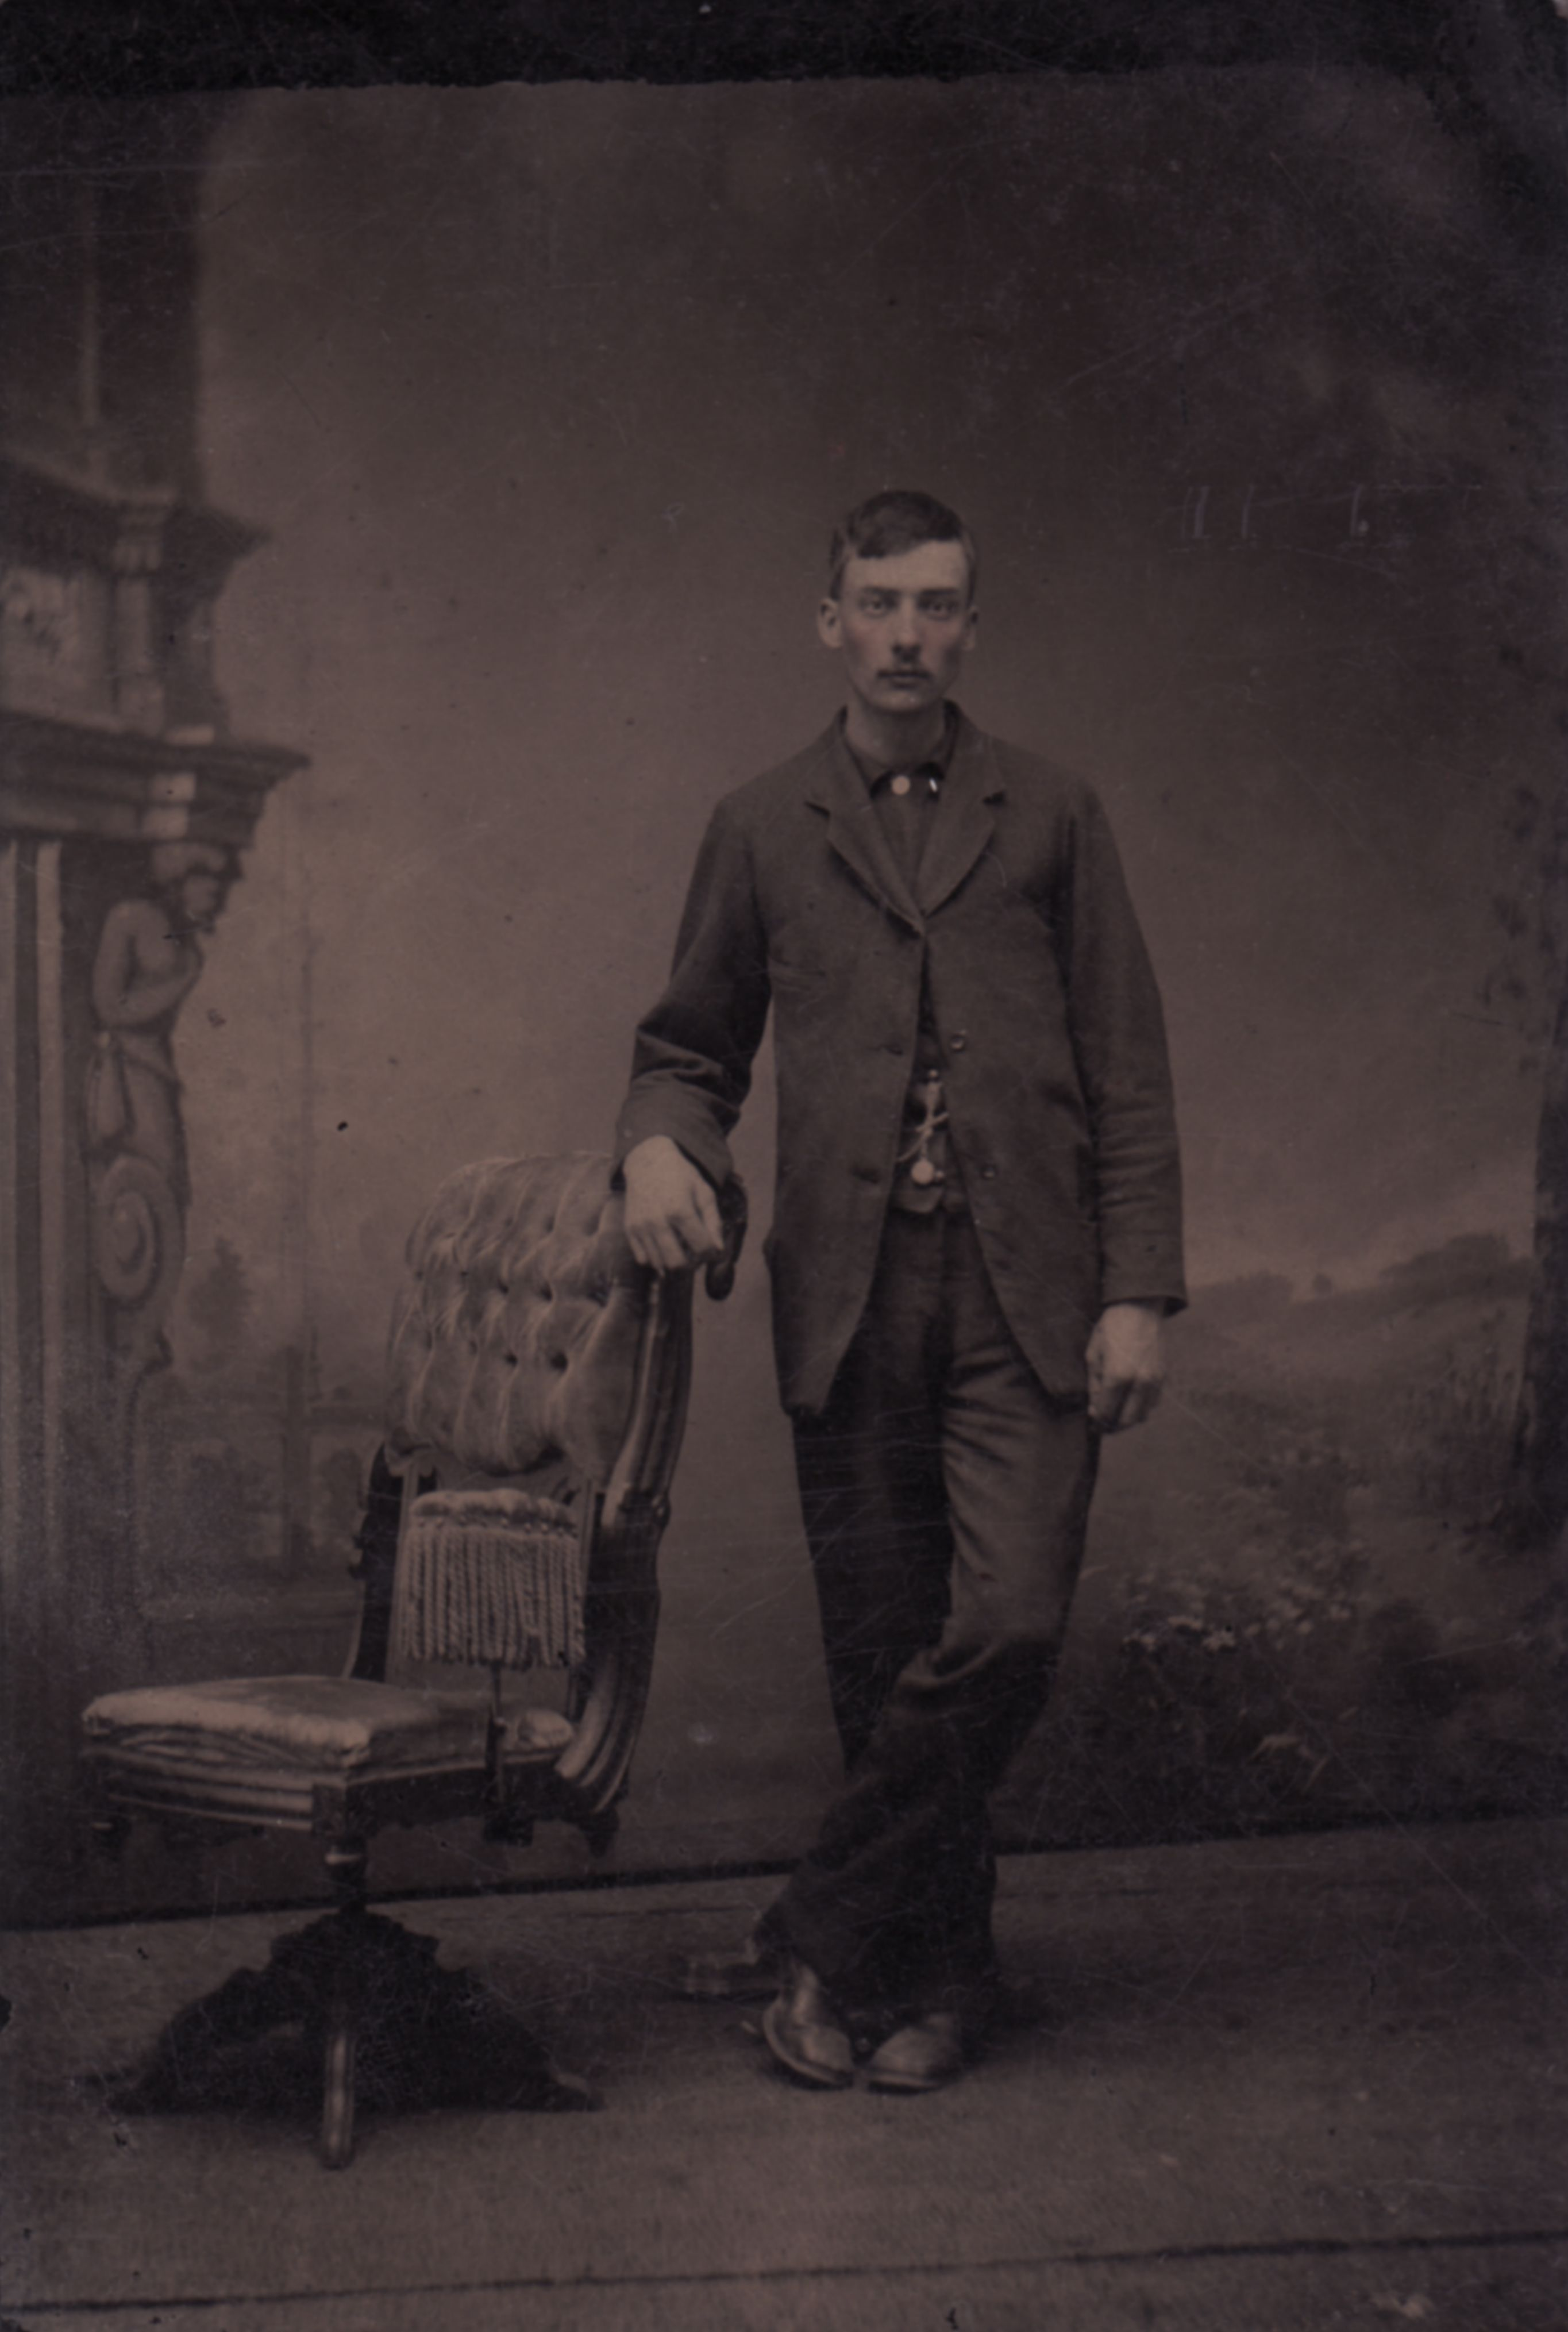 The beautiful and the functional: 19th-century photography at the 19th century photography gallery